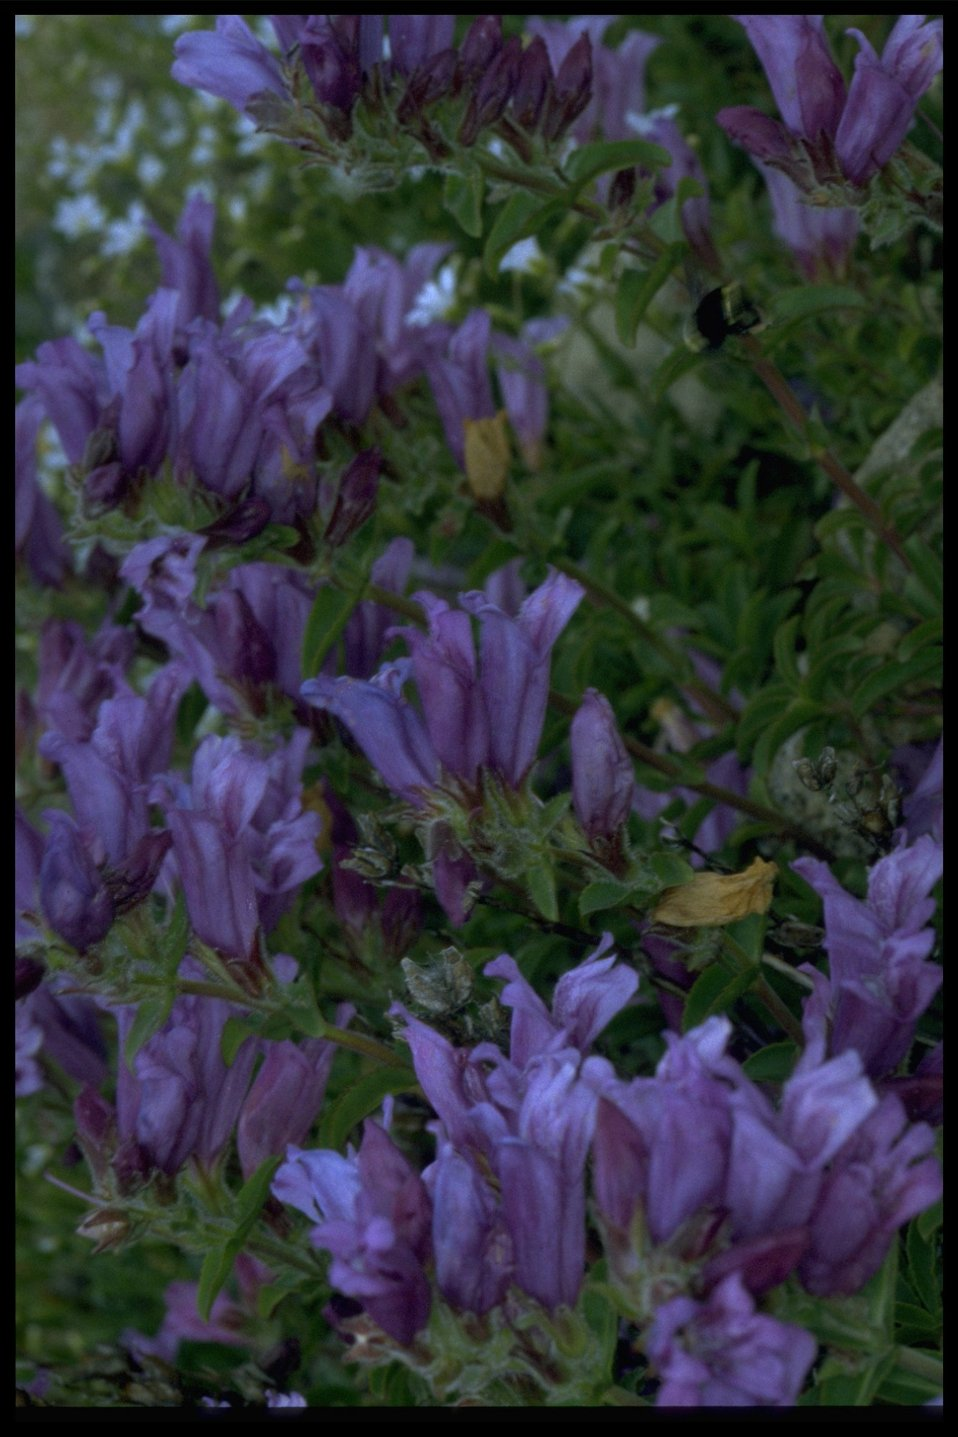 Medium shot of wildflowers (genus Penstemon).